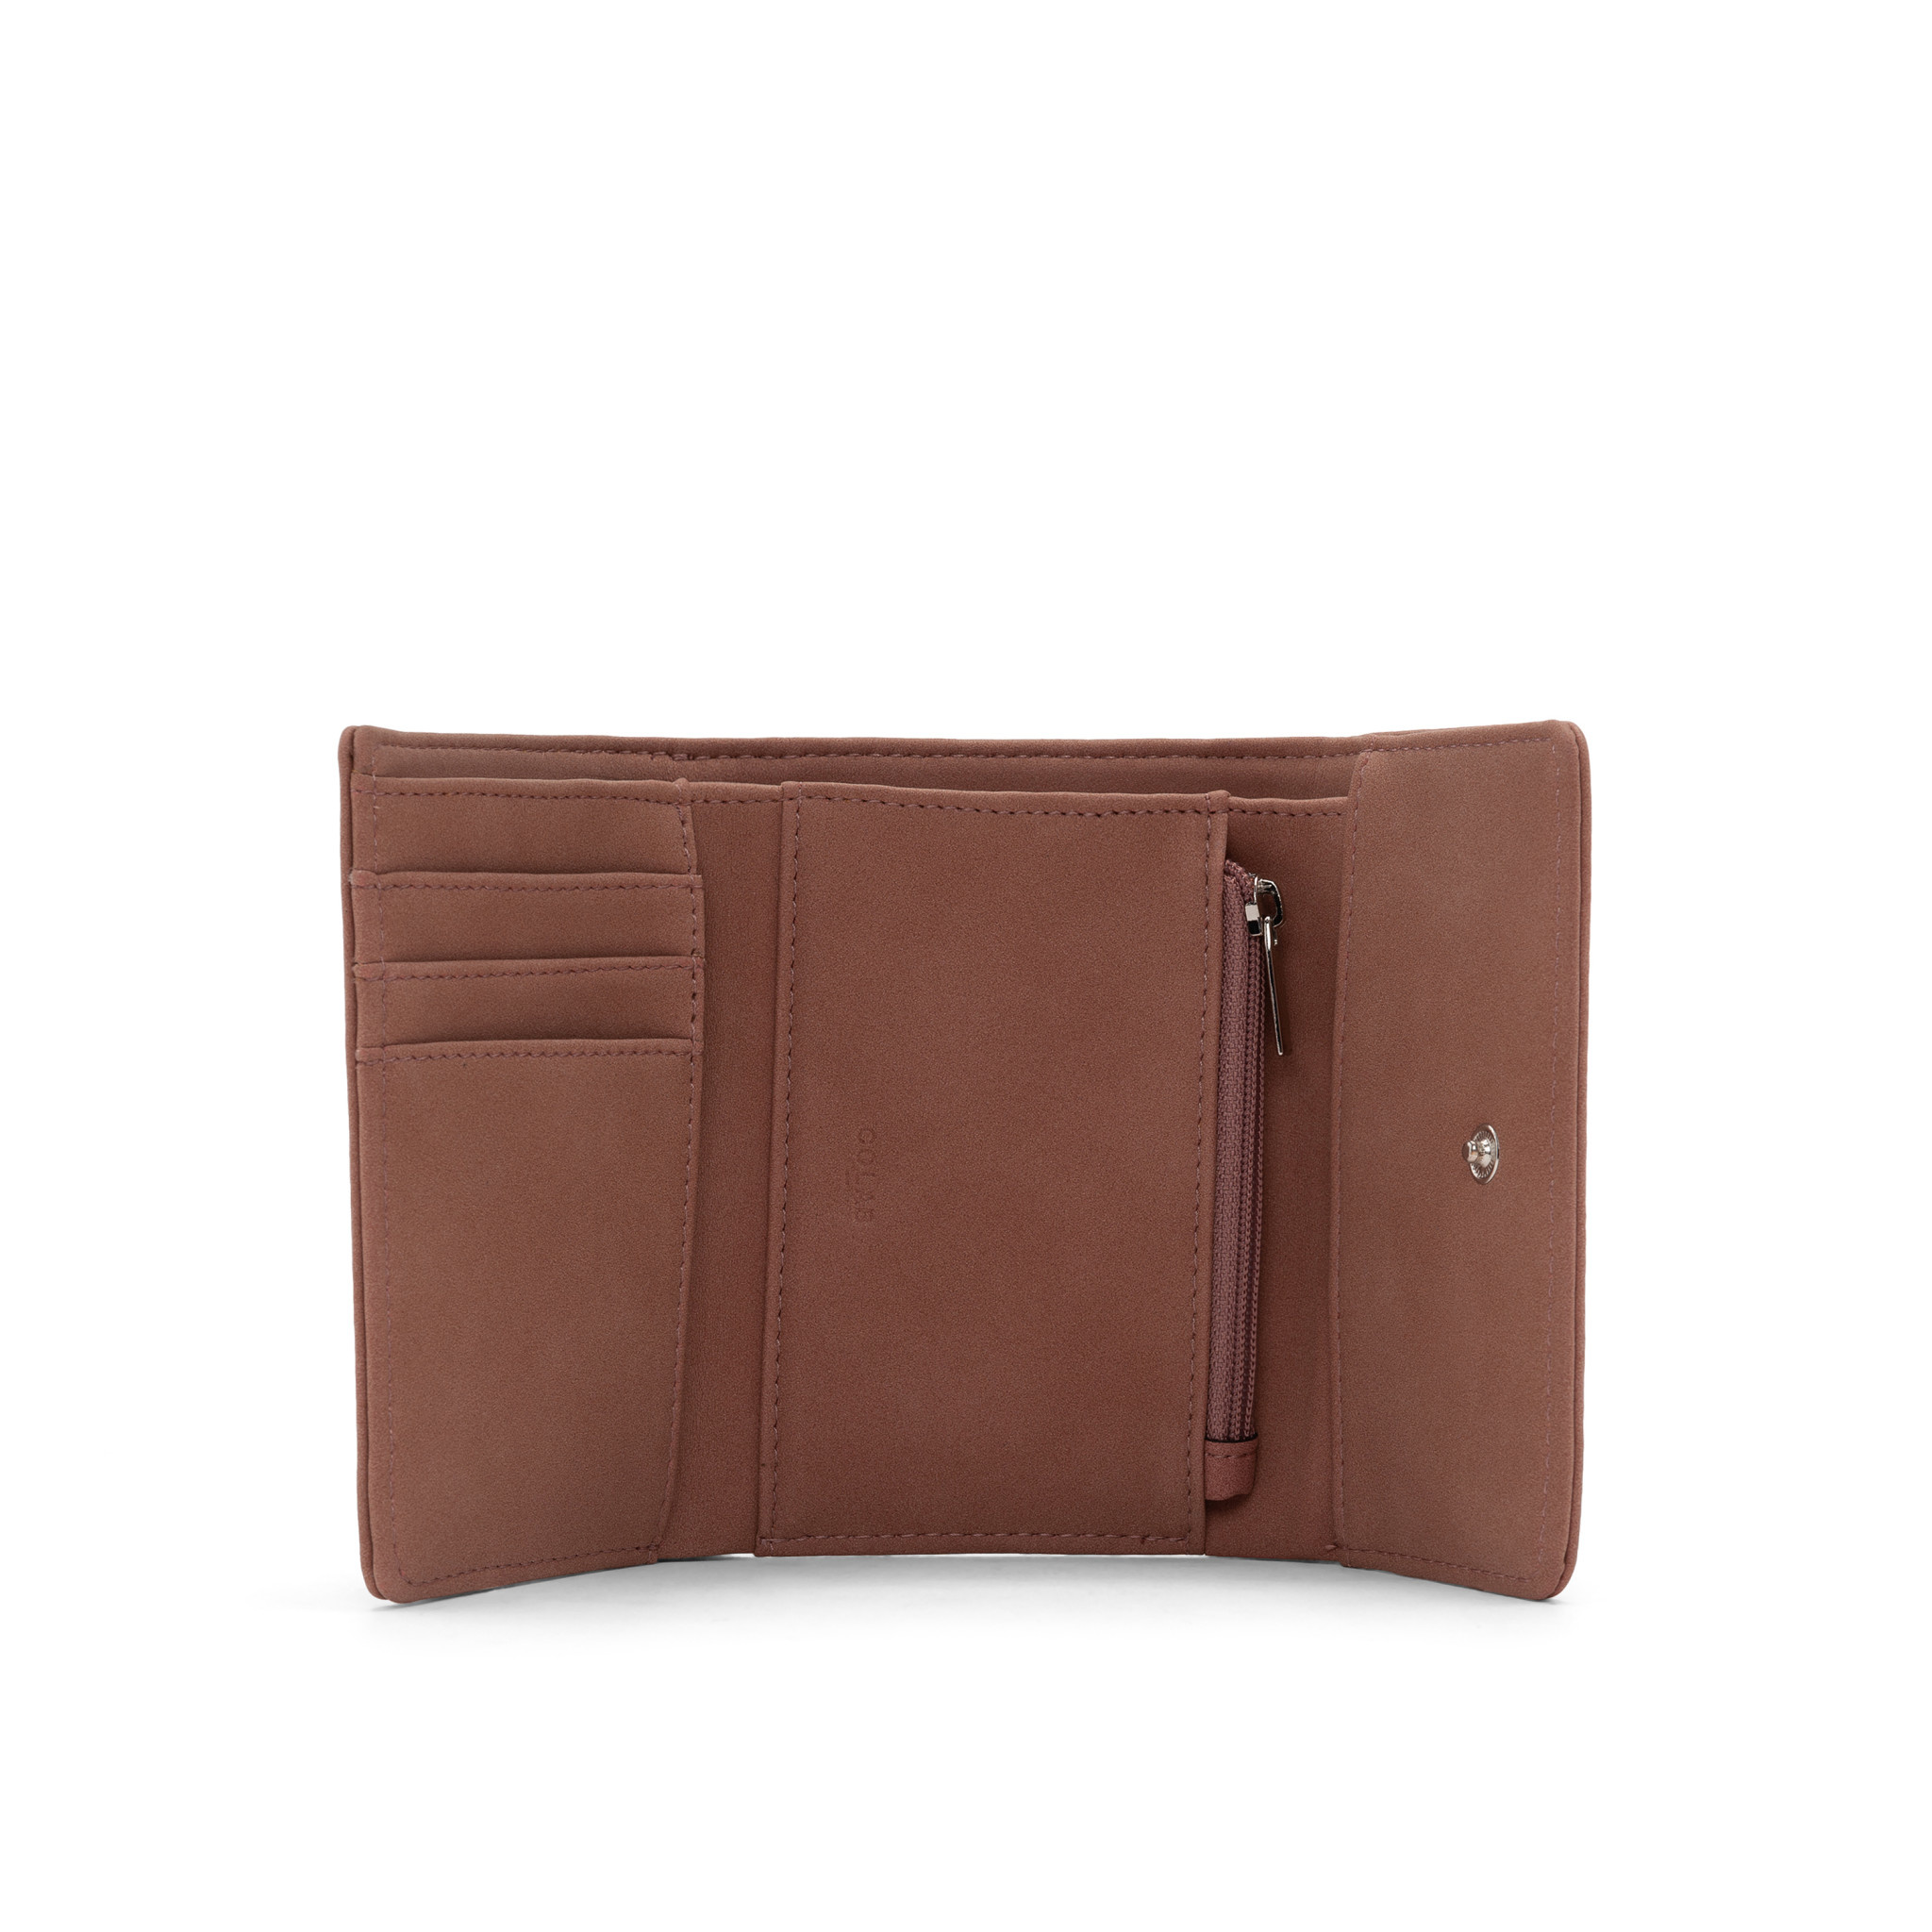 Colab Colab Nubuck Wallet (#6369) - Rosemary